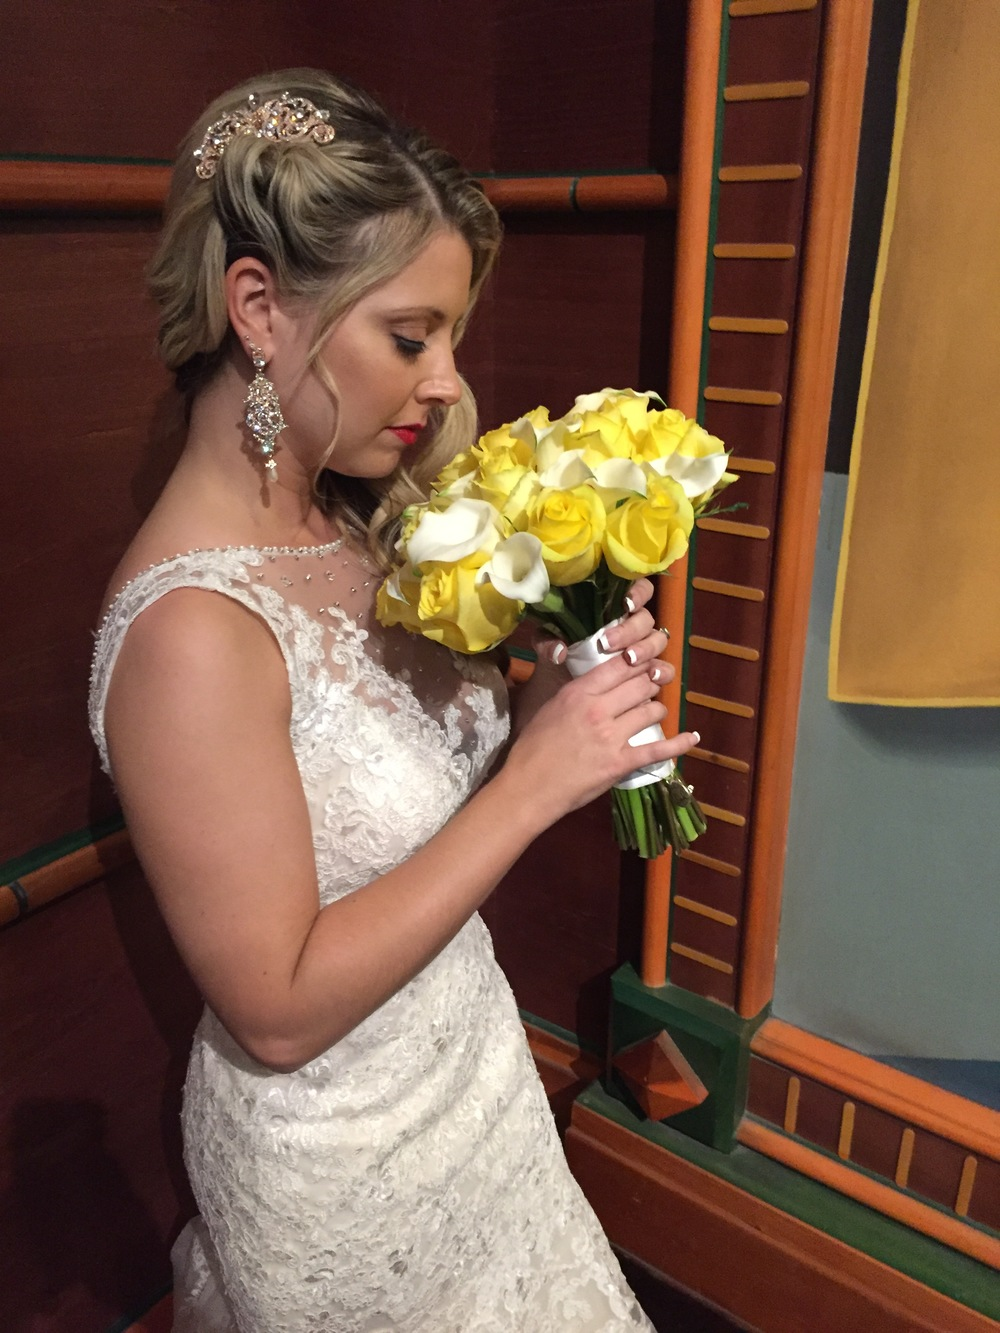 Halie's Las Vegas wedding on October 14, 2015